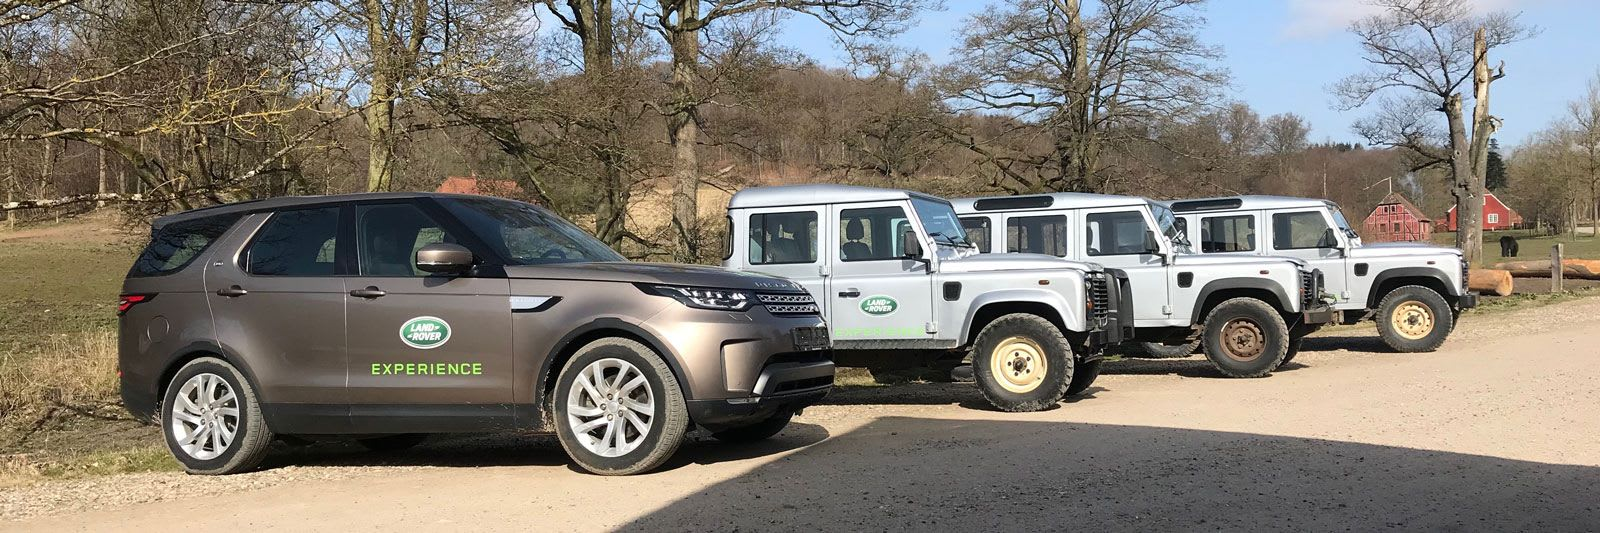 Land Rover Experience Danmark - vehicles